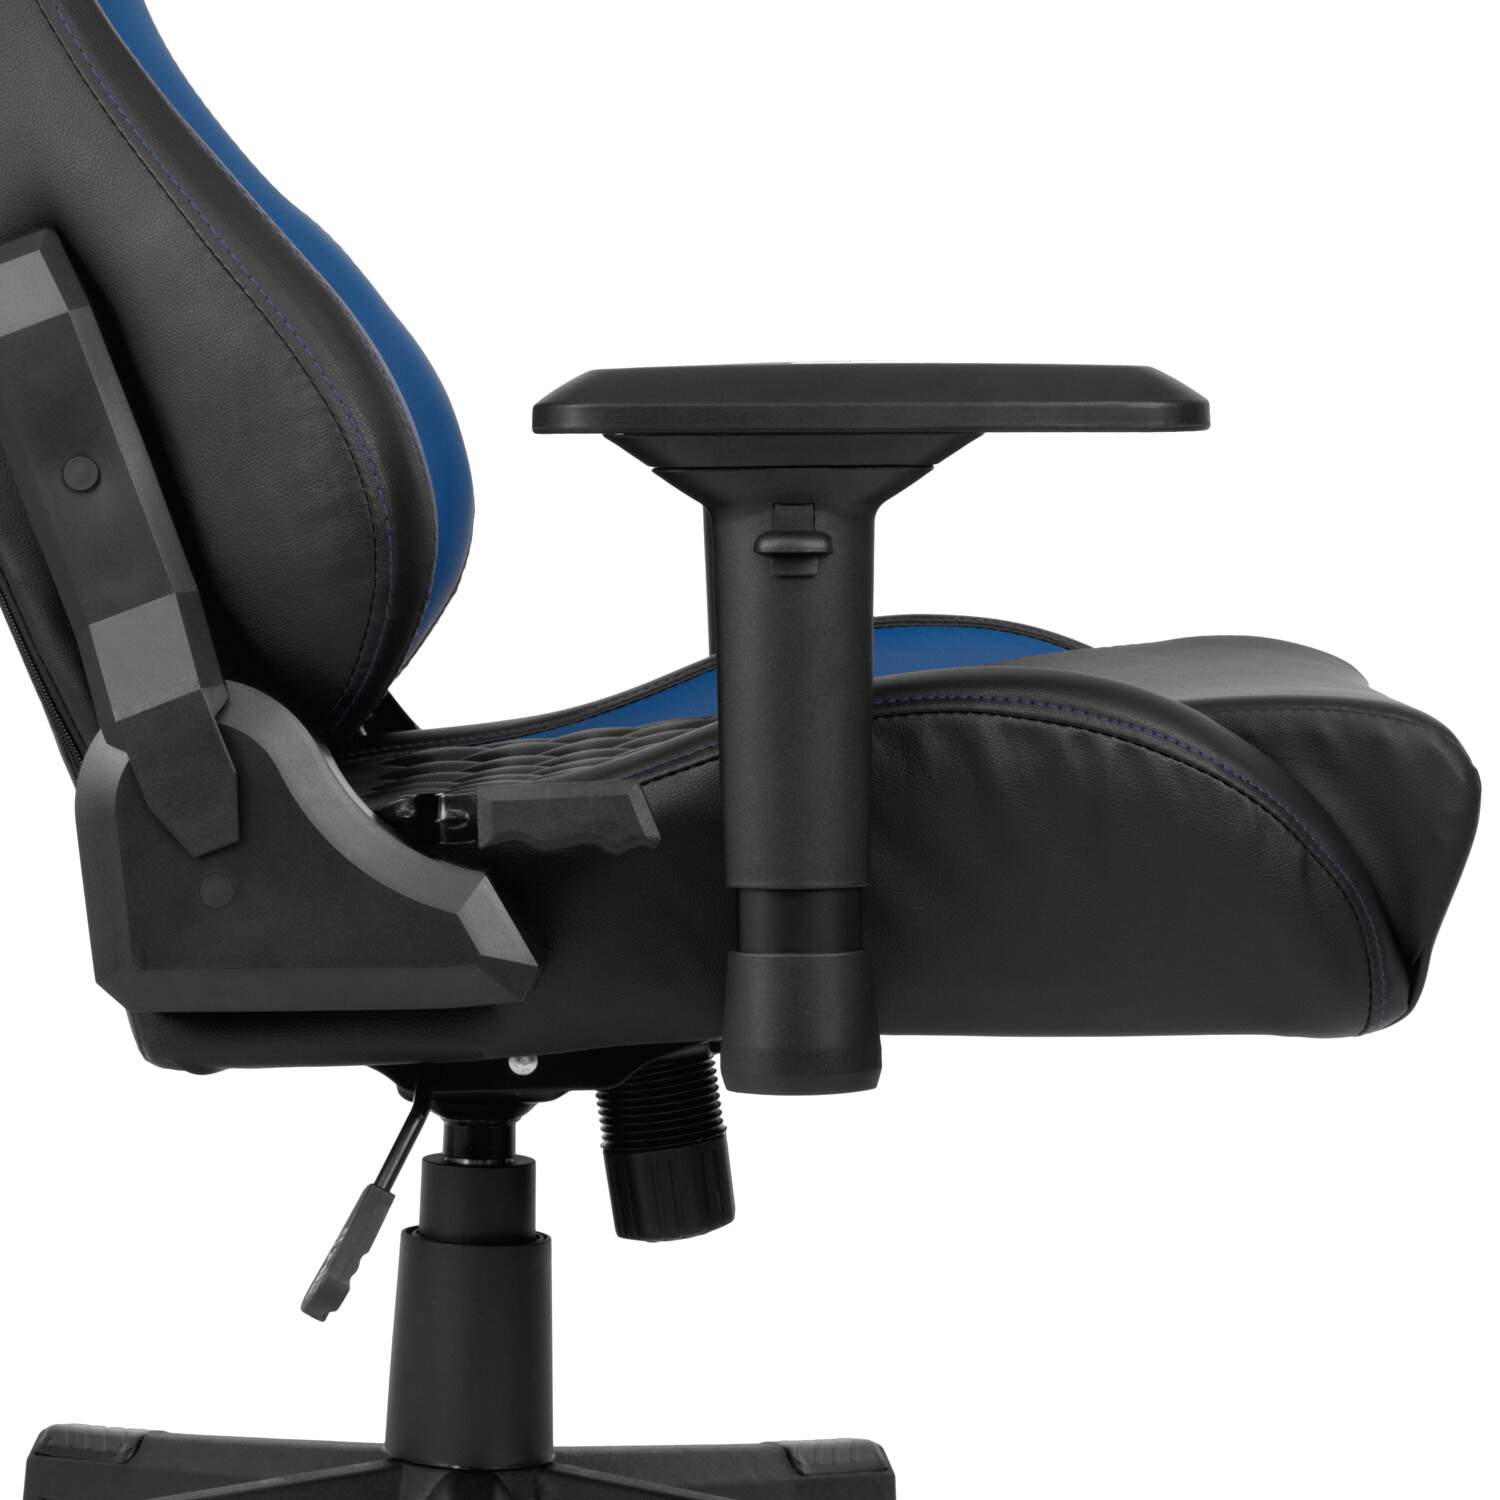 Cadeira Gamer DT3 Sports Ravena Black Blue 11538-8